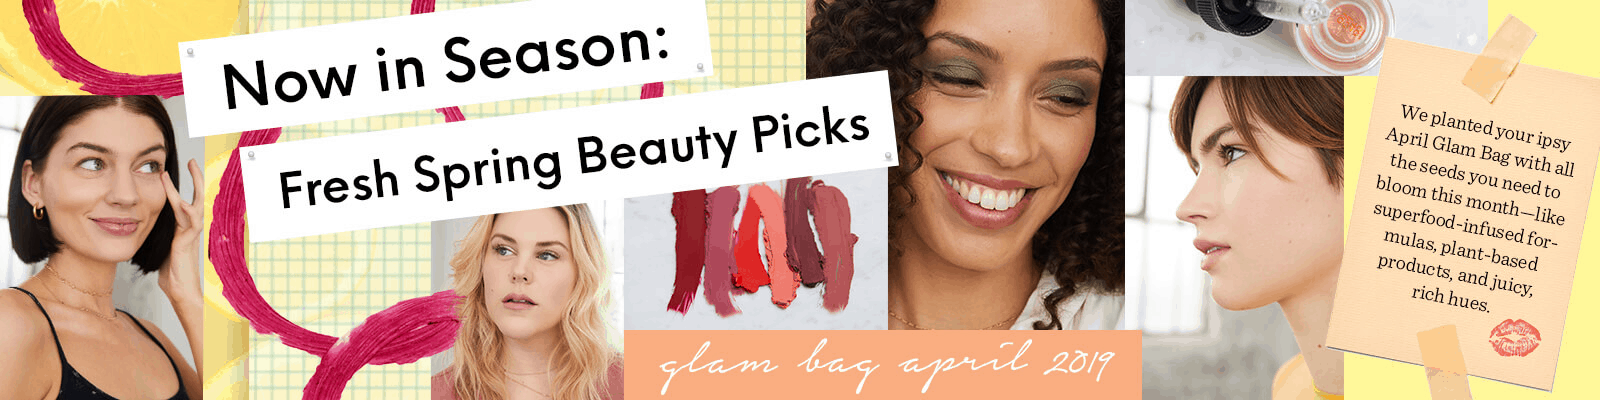 Ipsy April 2019 Glam Bag Full Spoilers + Reveals Available Now